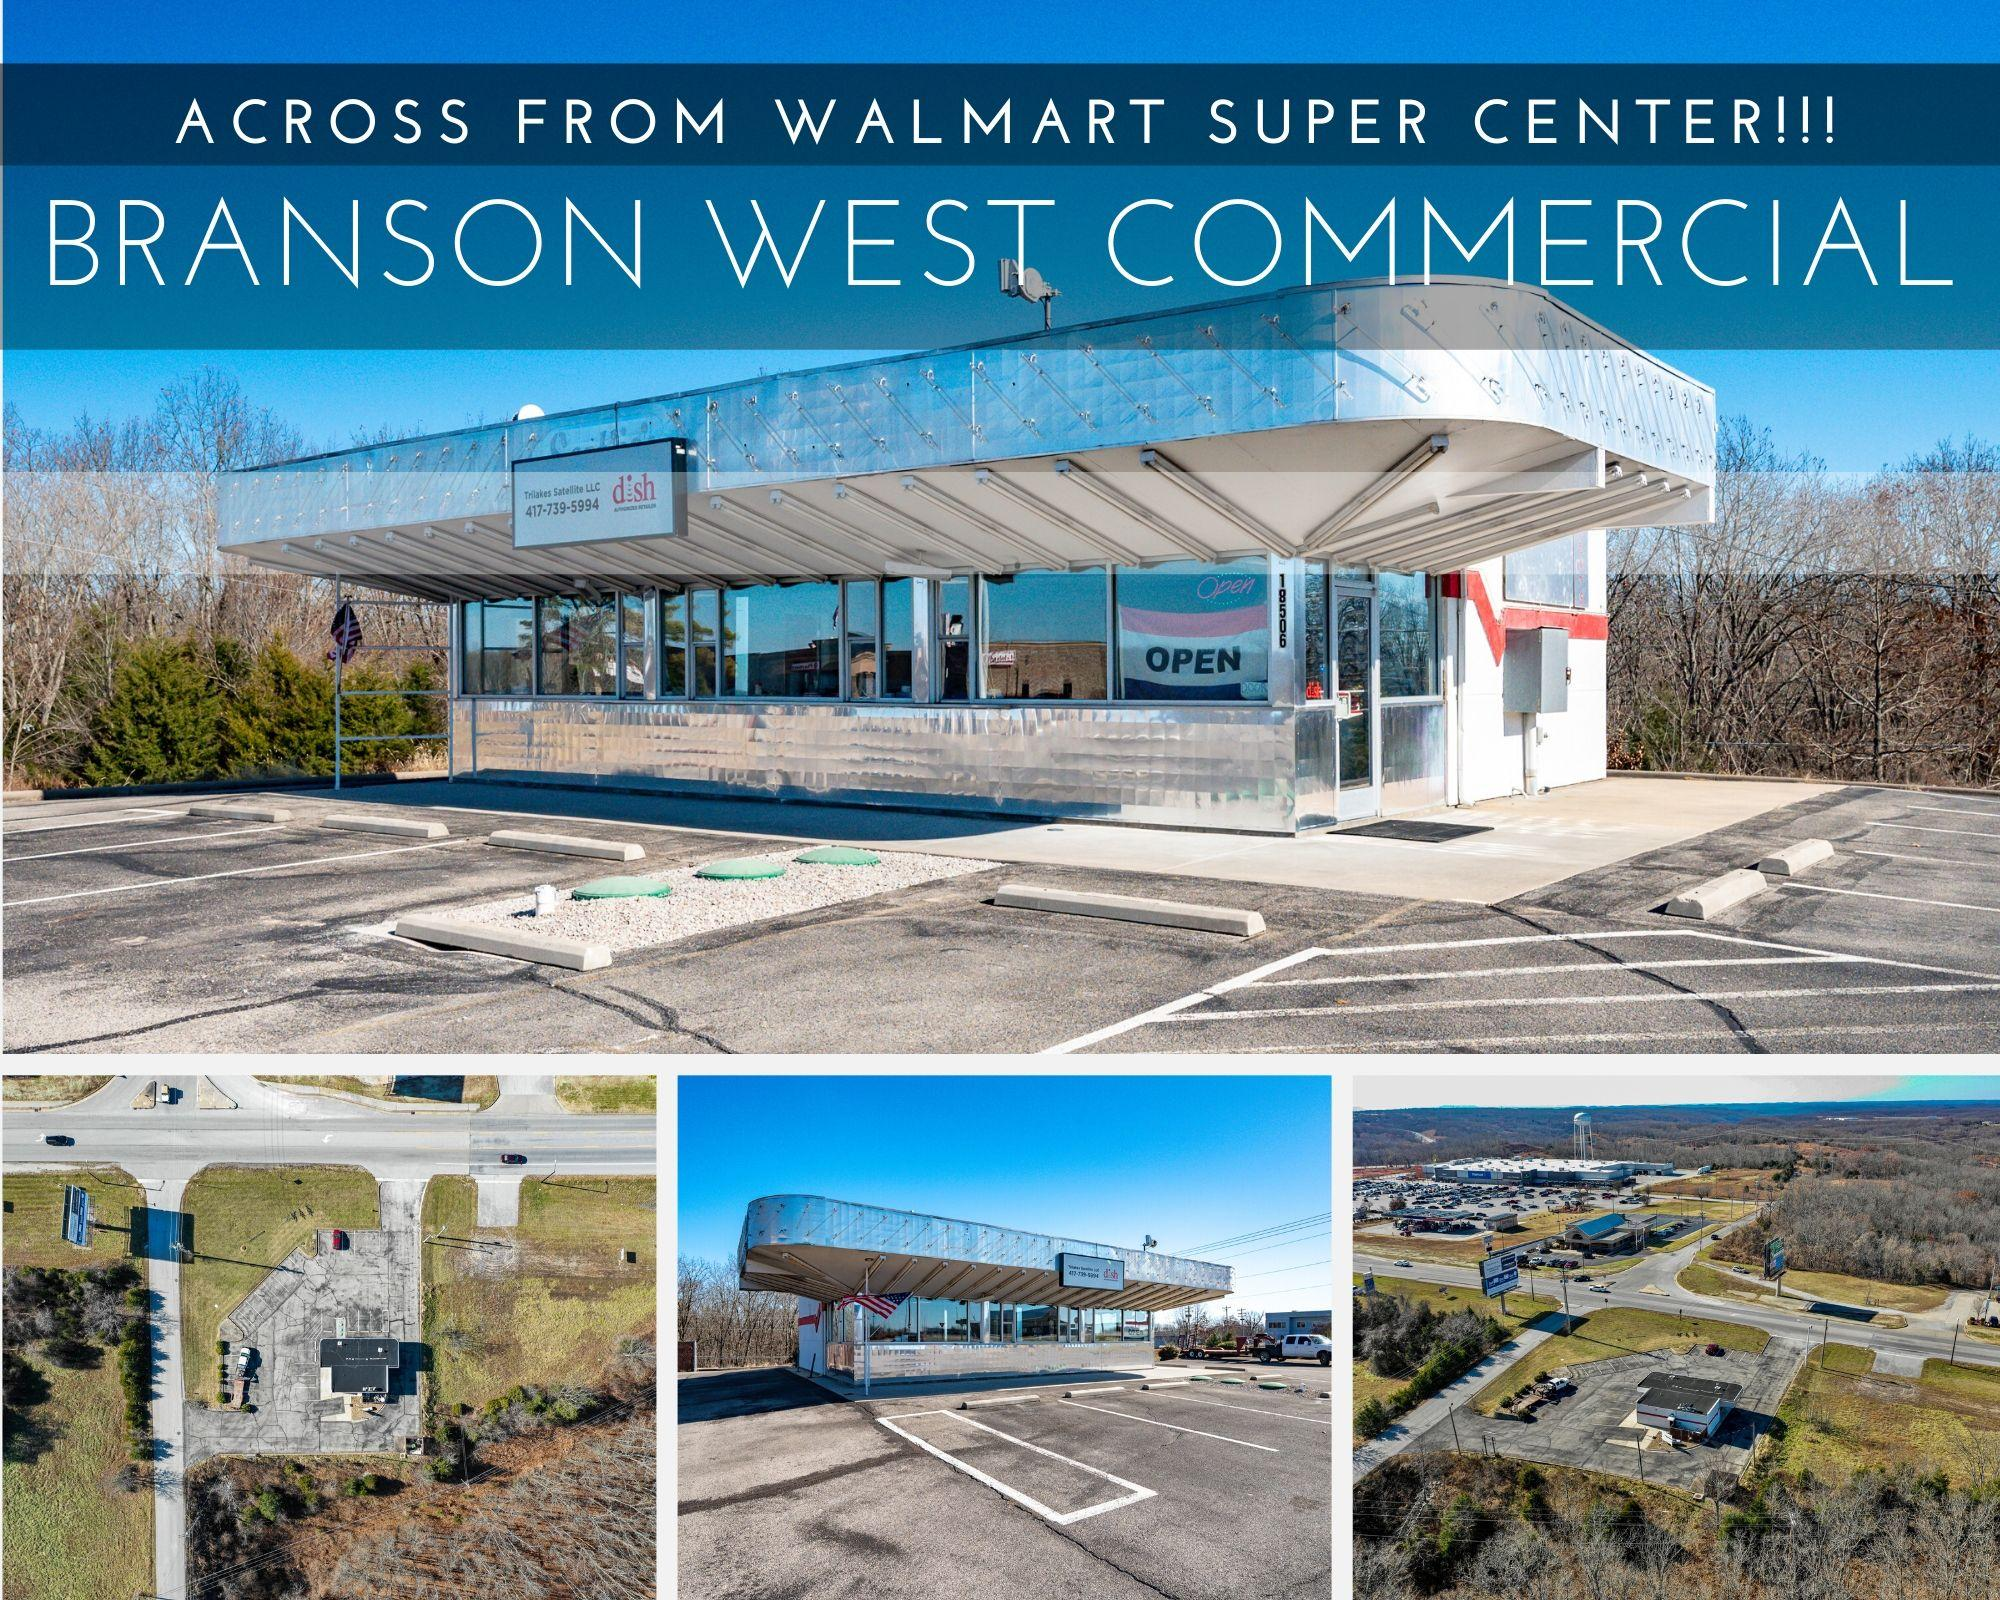 18506 Business Branson West, MO 65737